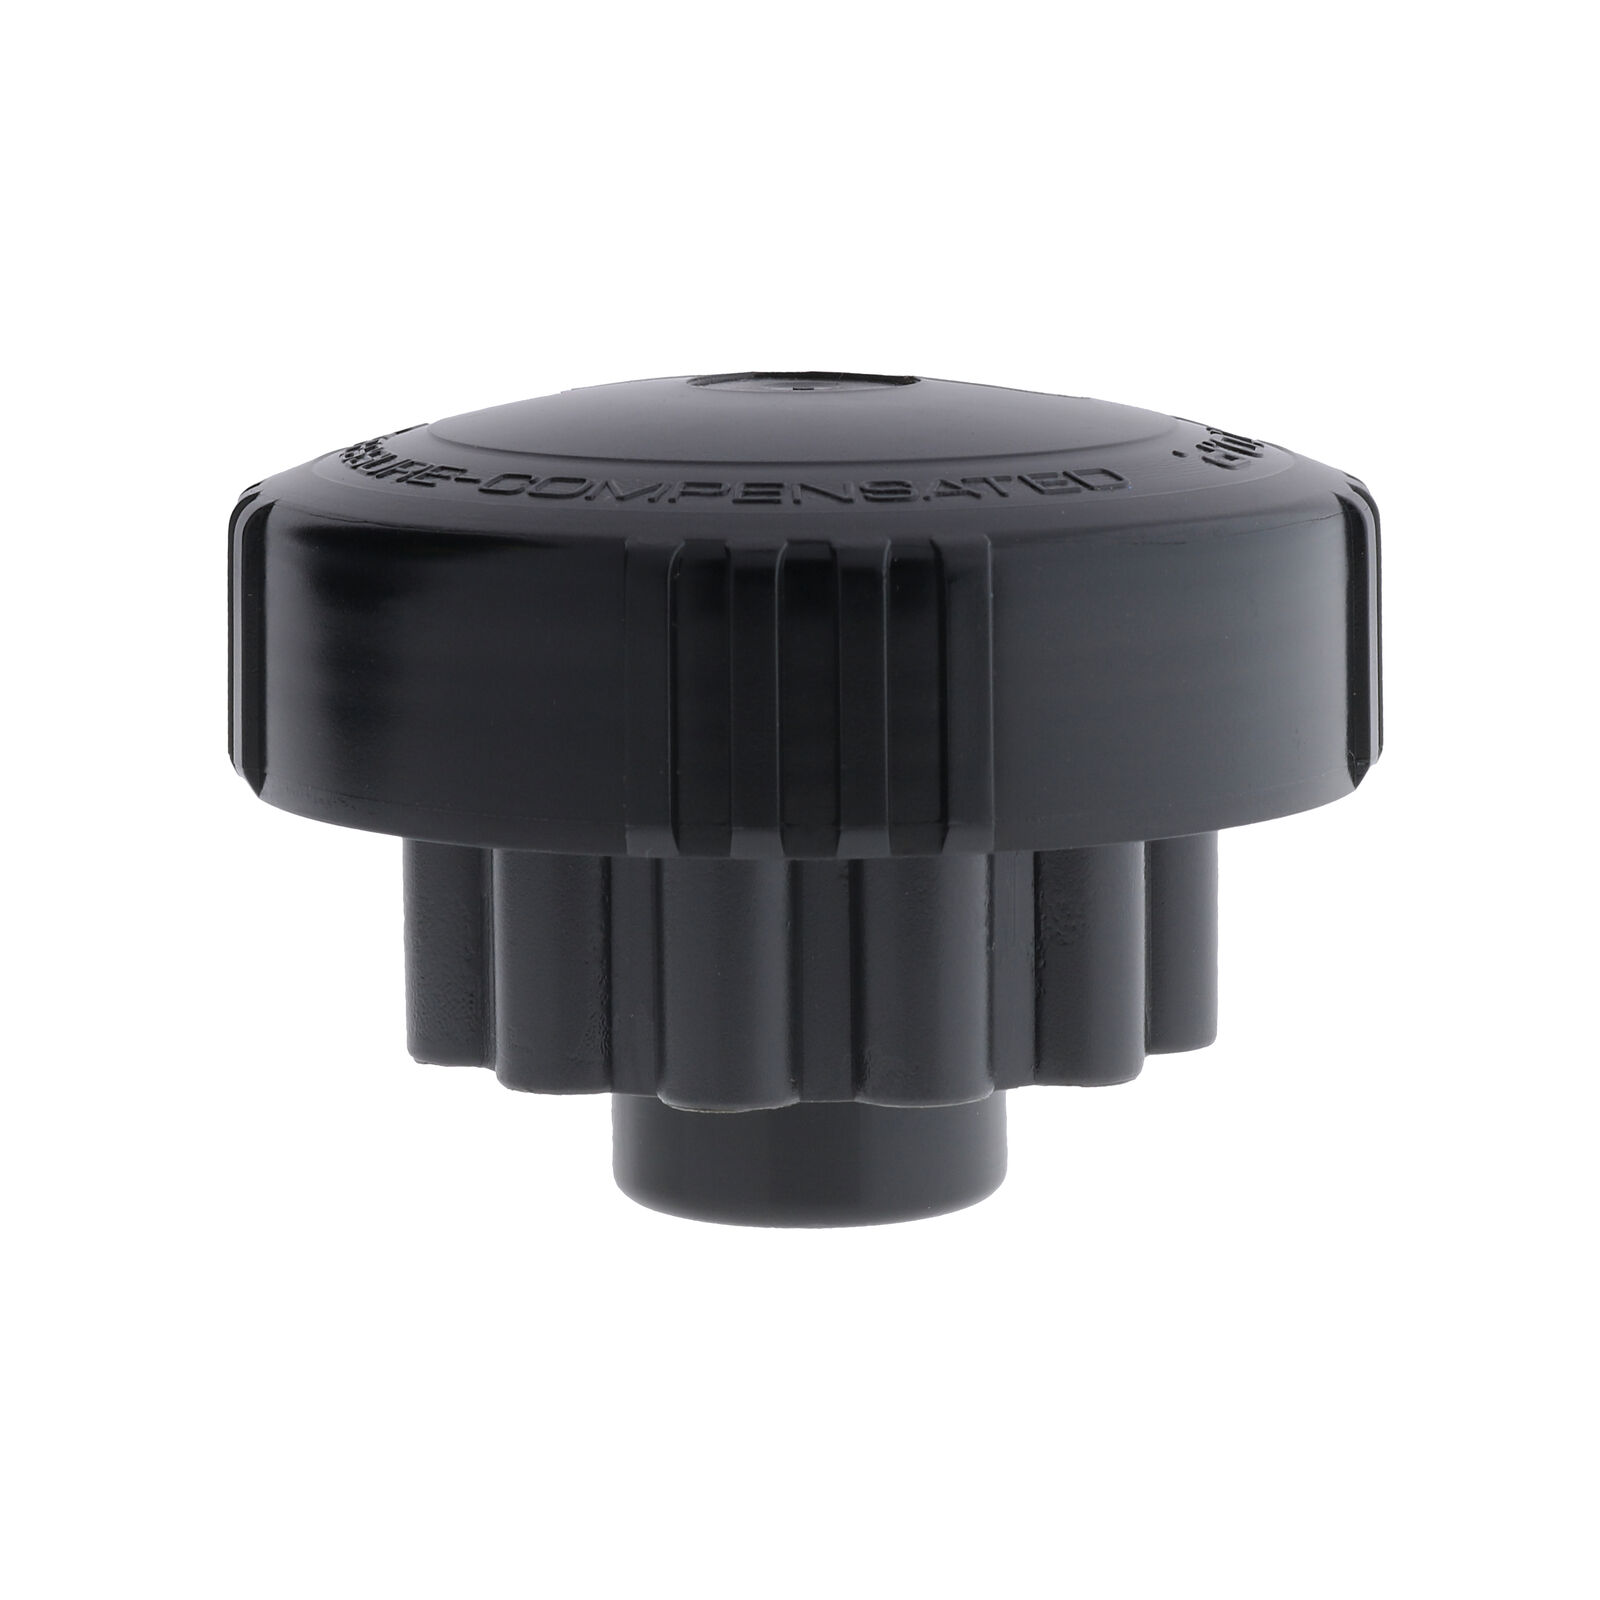 TOP 12 Outlet Dripper Manifold by DIG-Outlet Flow Rate:0.6 GPH